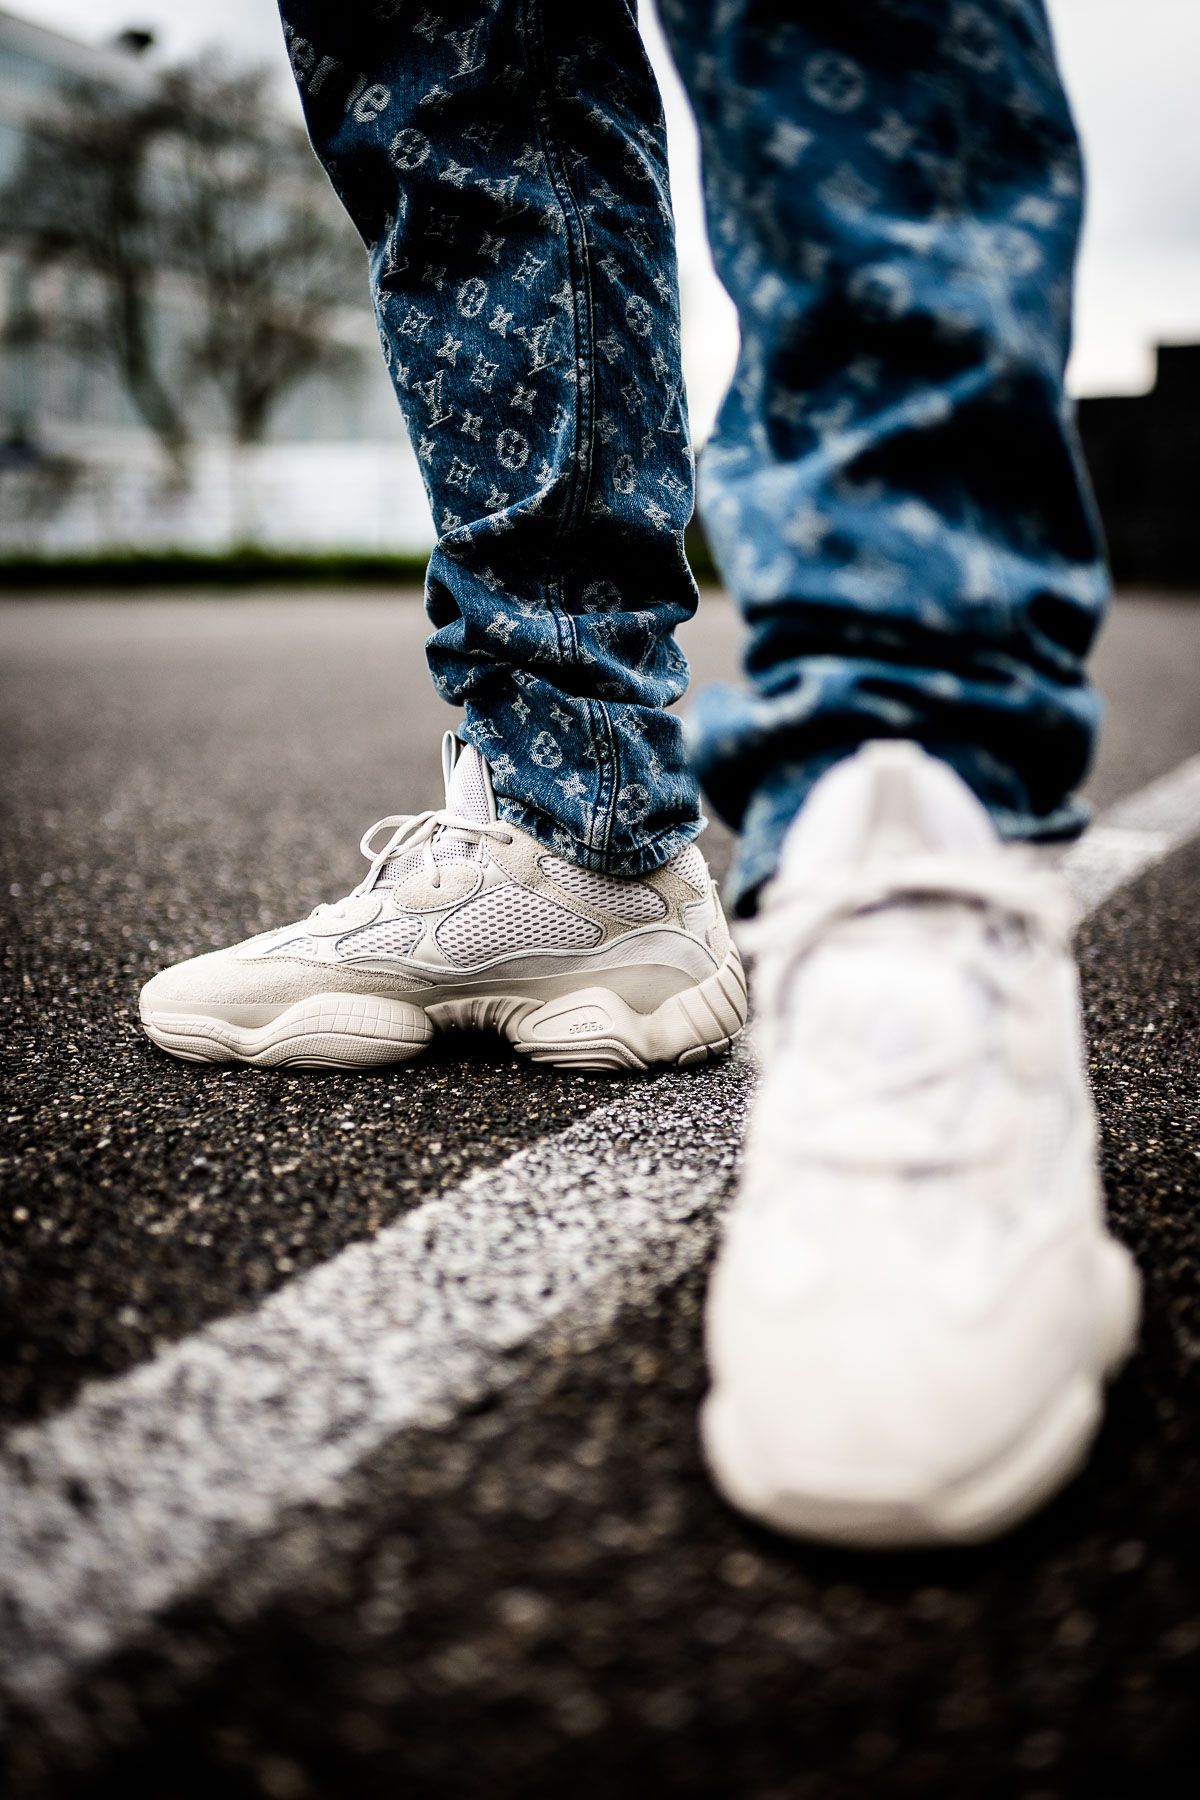 reputable site c5864 0995f adidas Yeezy 500 Blush - on feet | Dead Stock